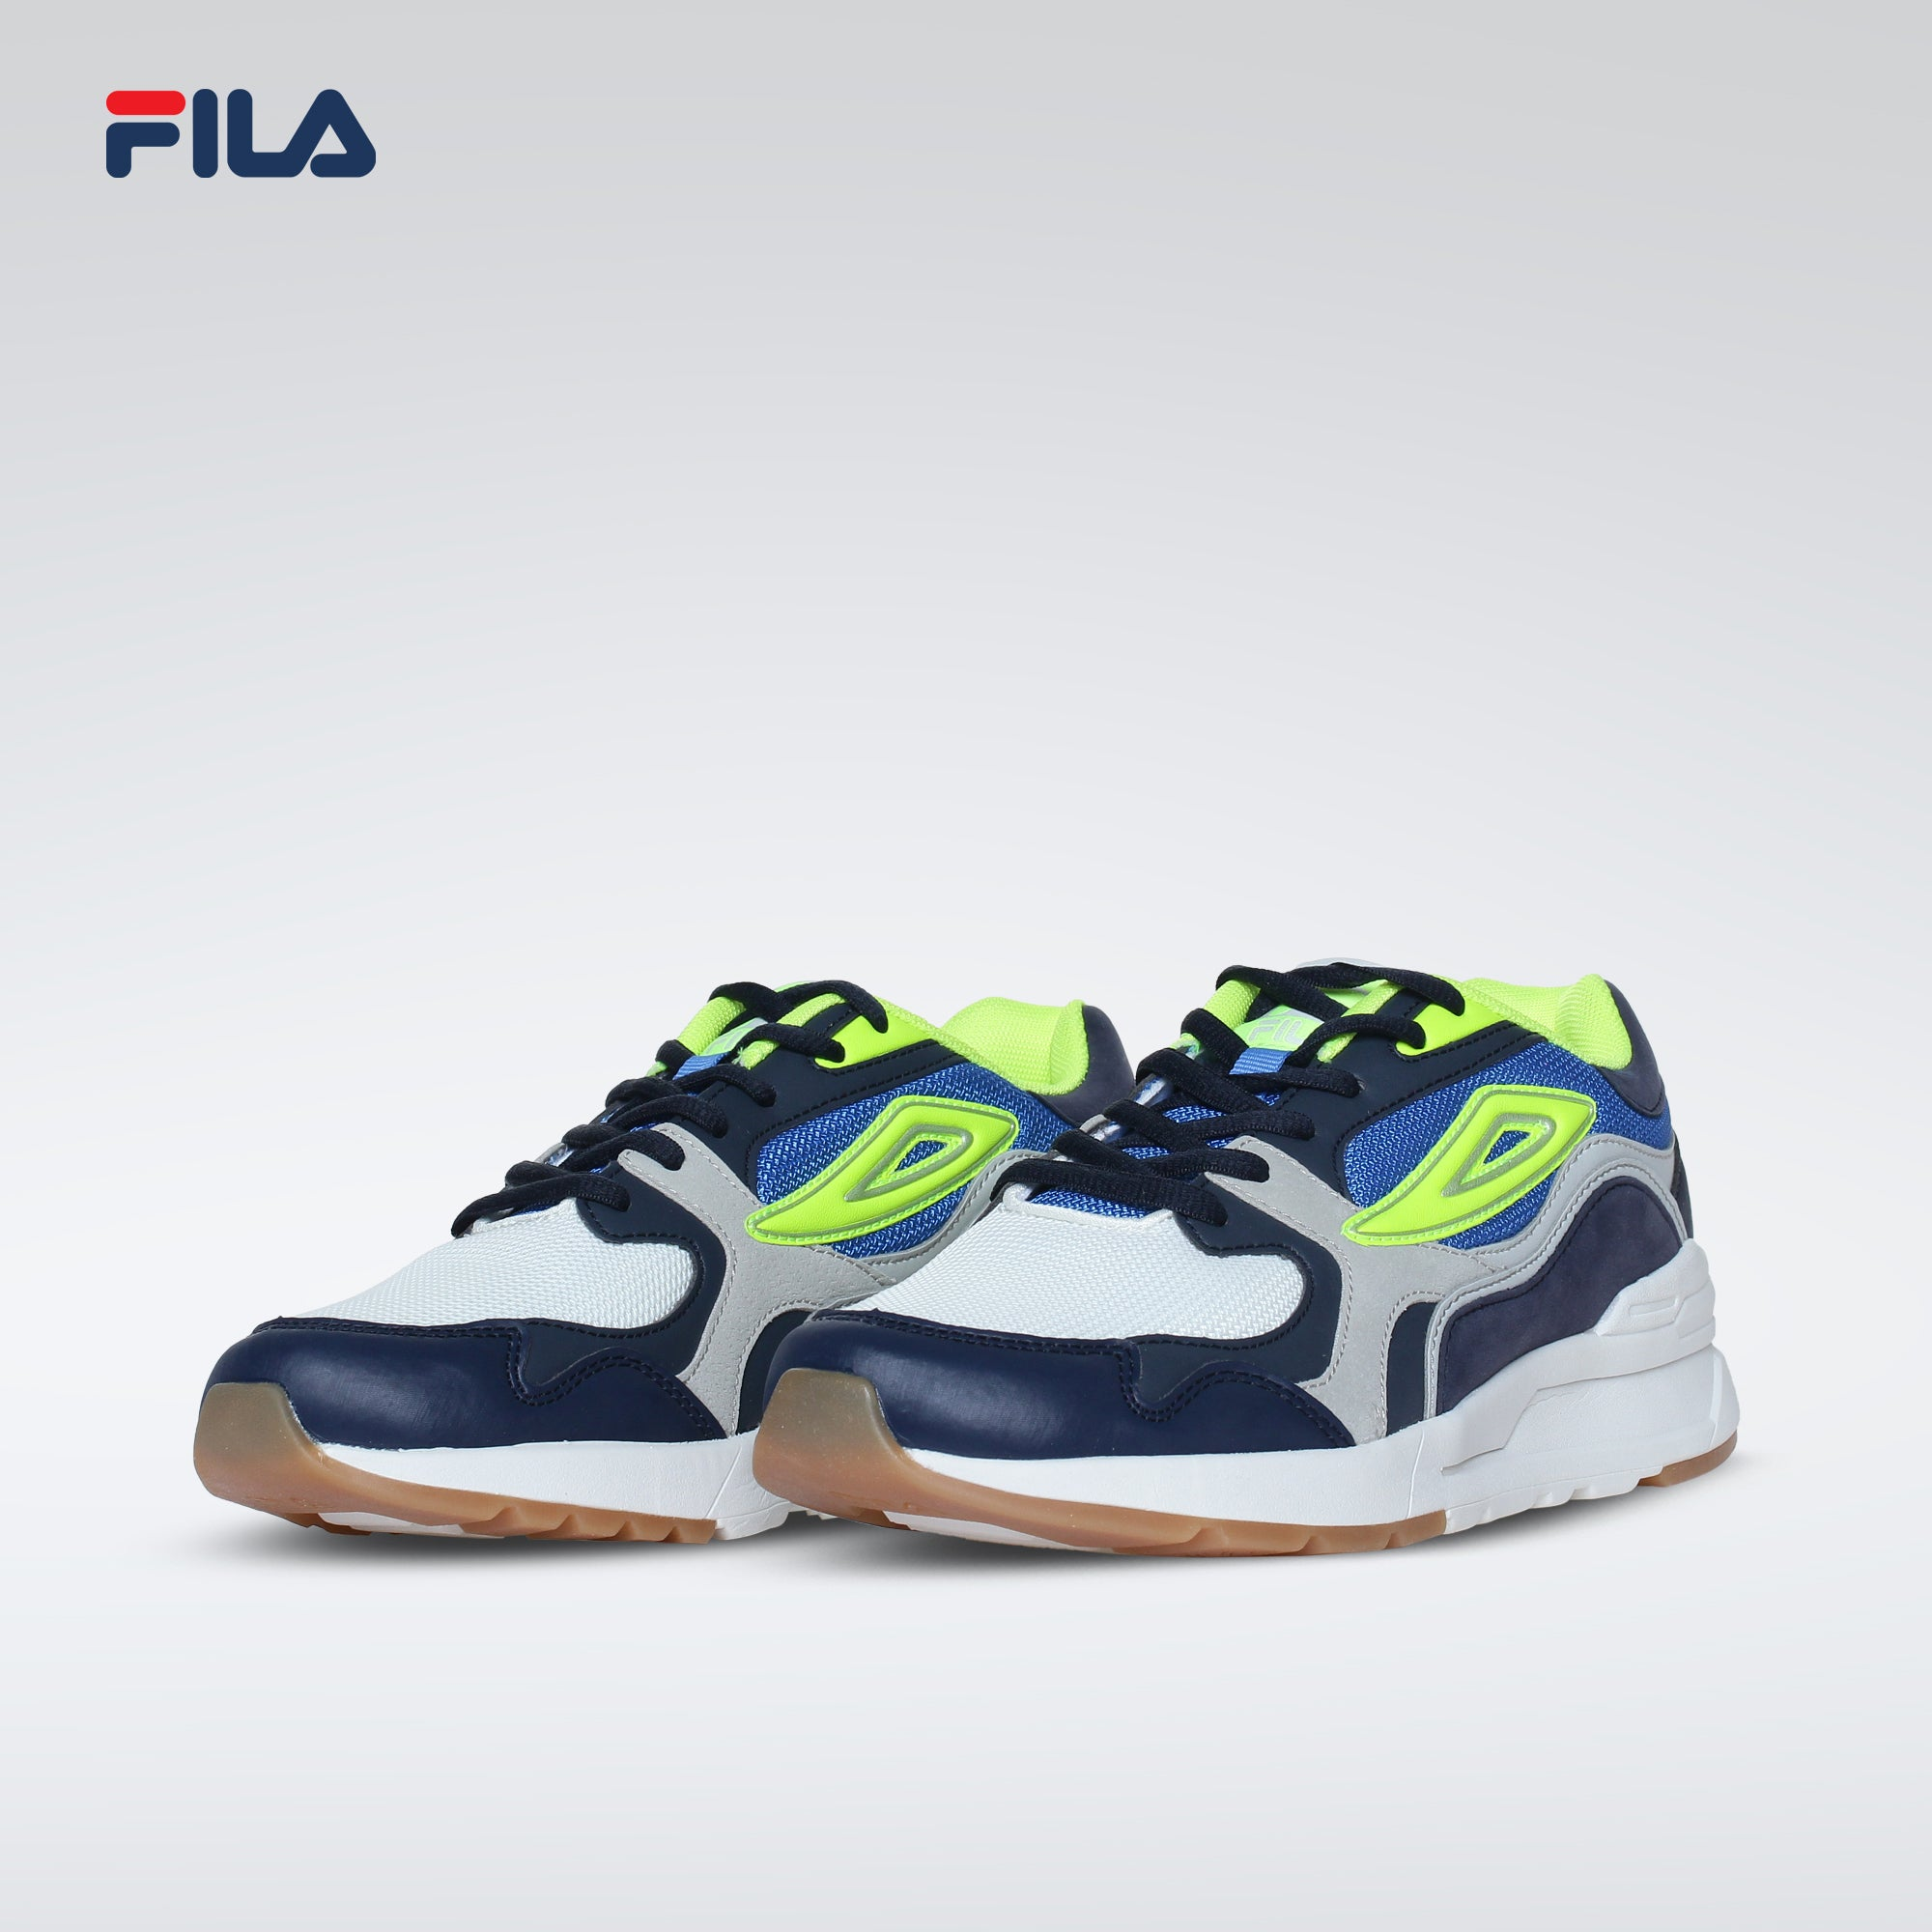 Fila Men's Hype Blade GRY/ROY/BLK/YEL